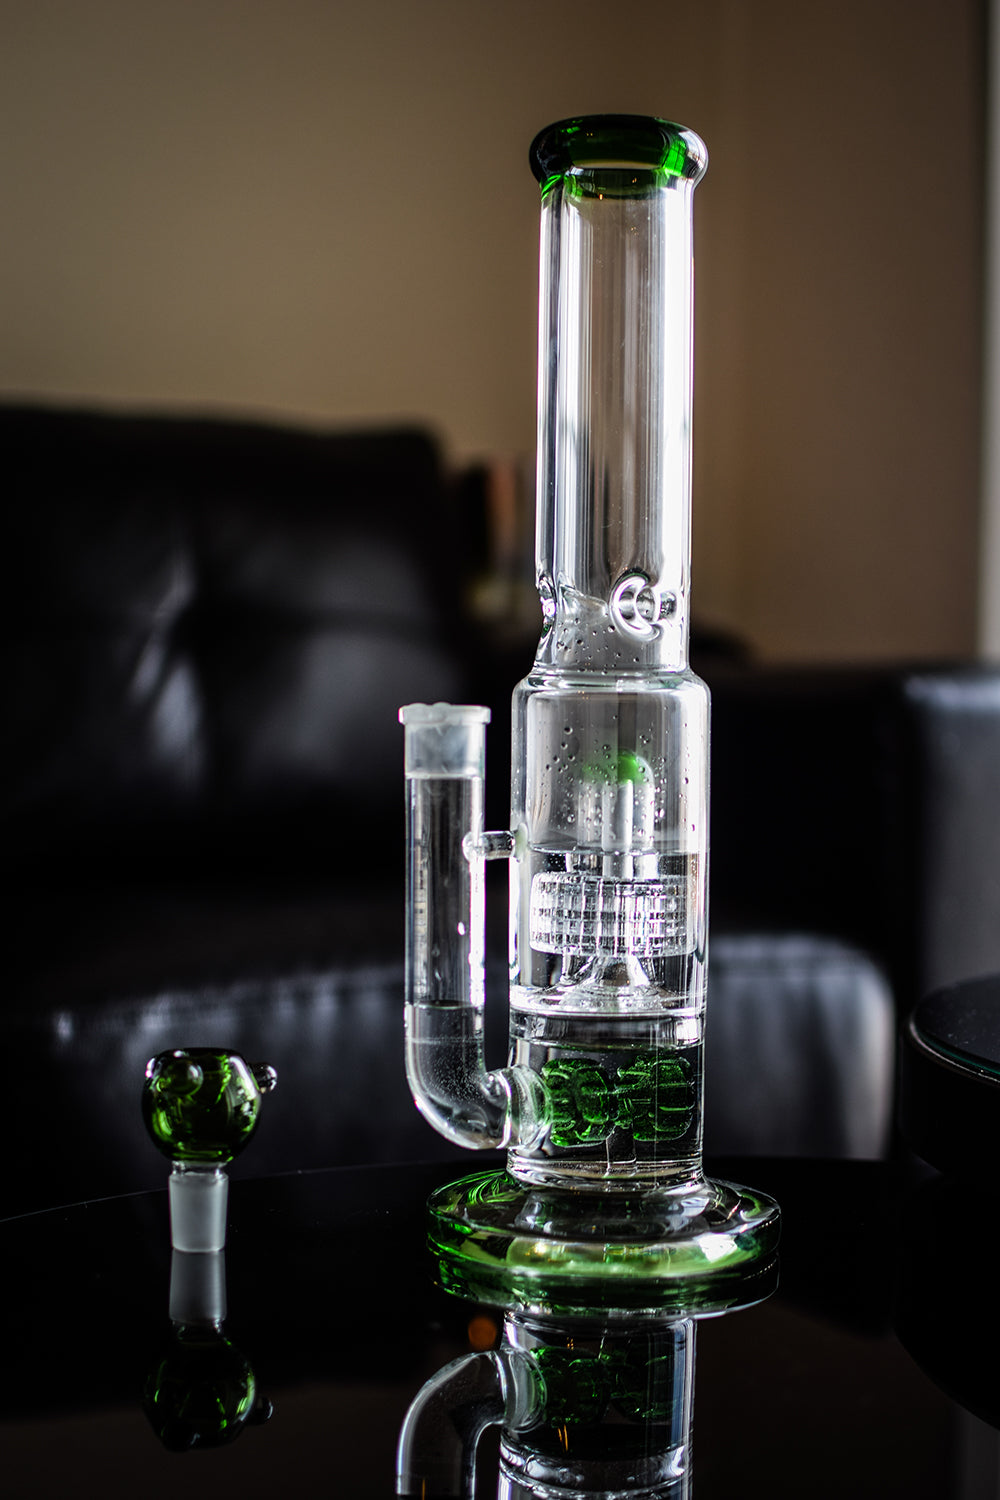 Water Pipes and Bongs